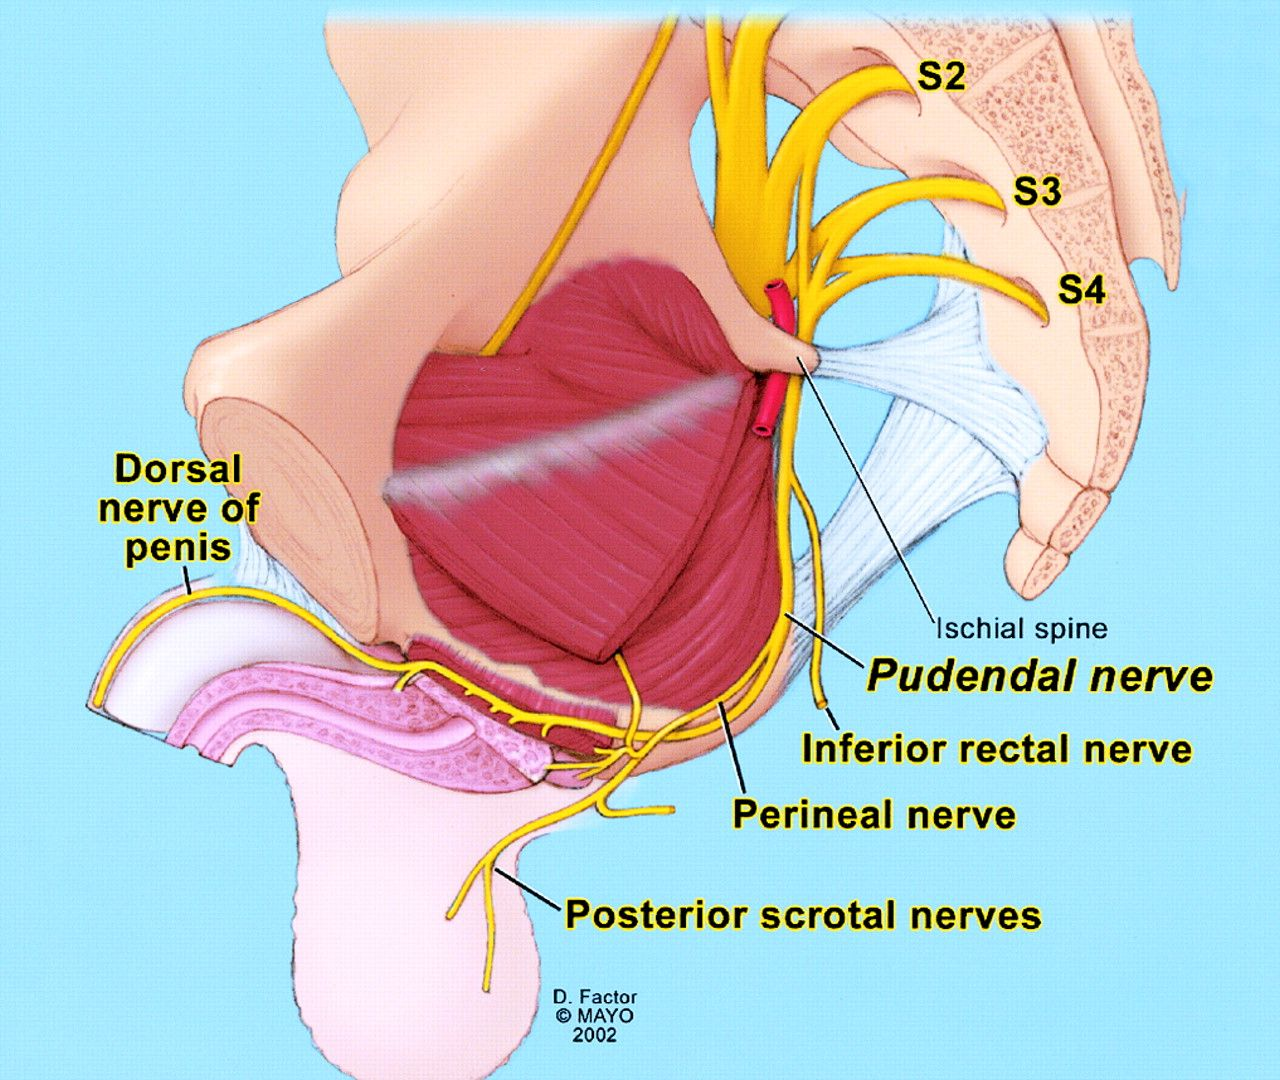 Schematic anatomy of pudendal nerve. Drawing illustrates pudendal ...